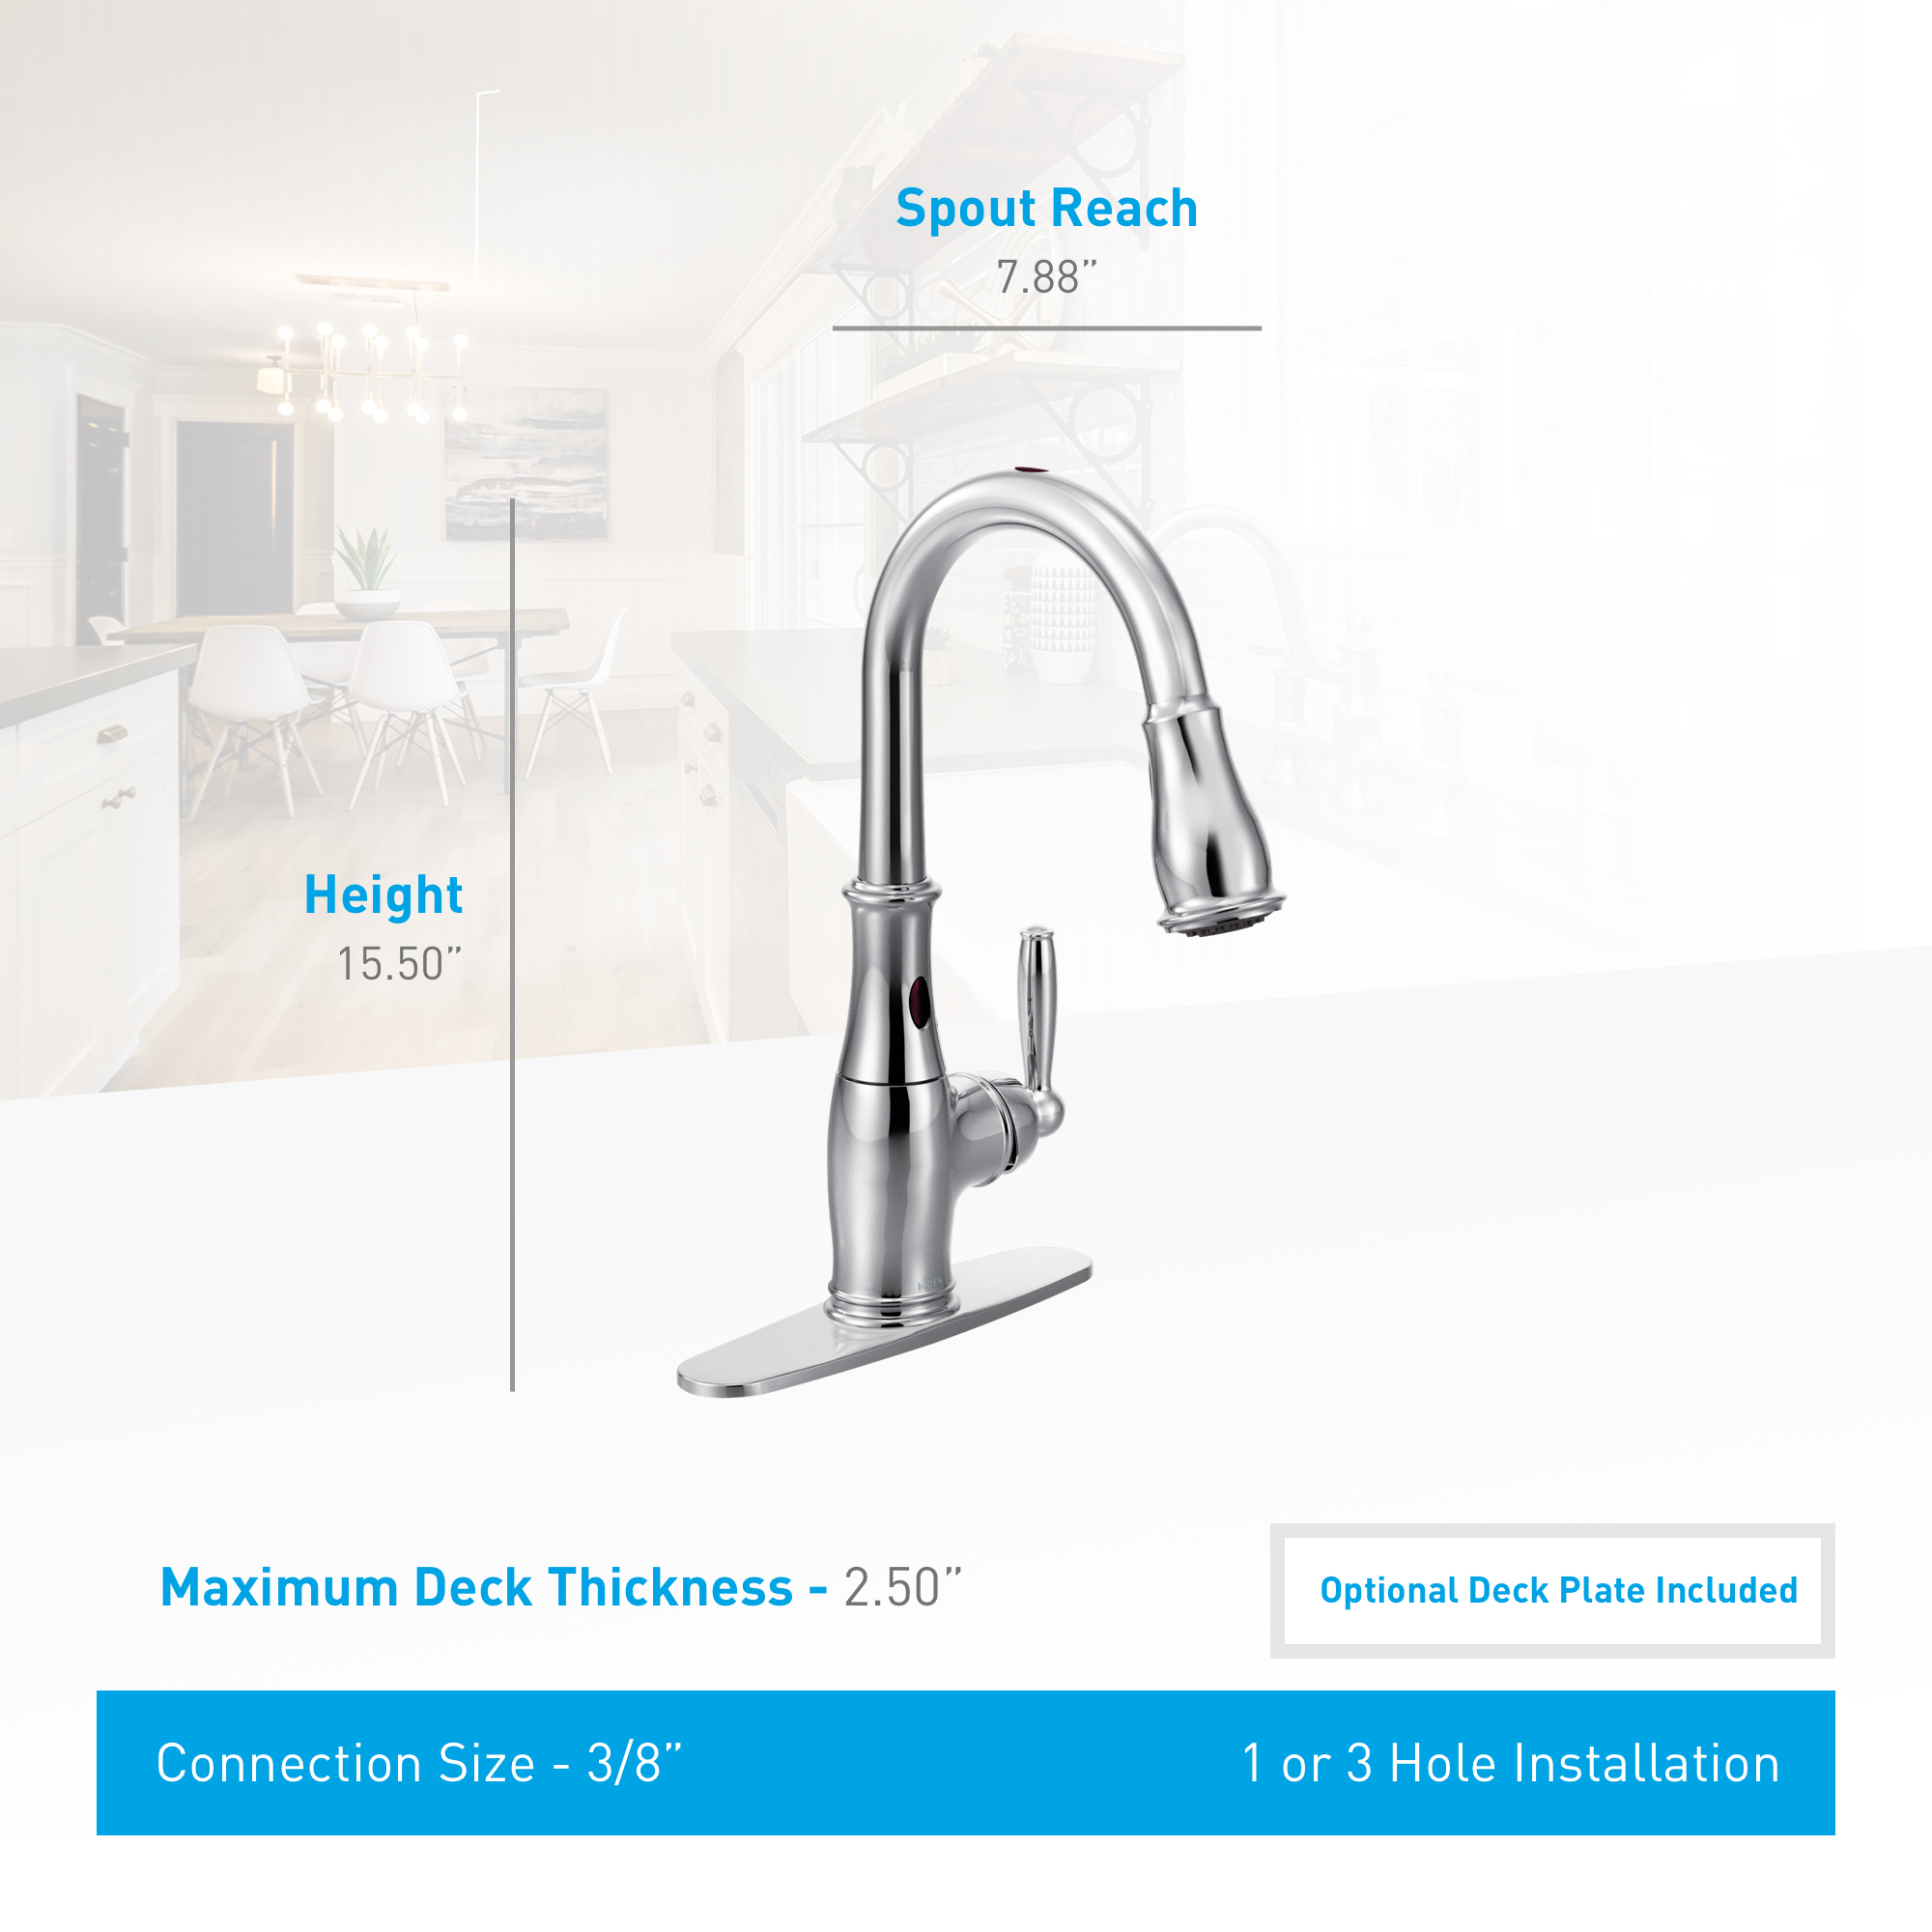 Moen 7185eorb Oil Rubbed Bronze Single Handle Touchless